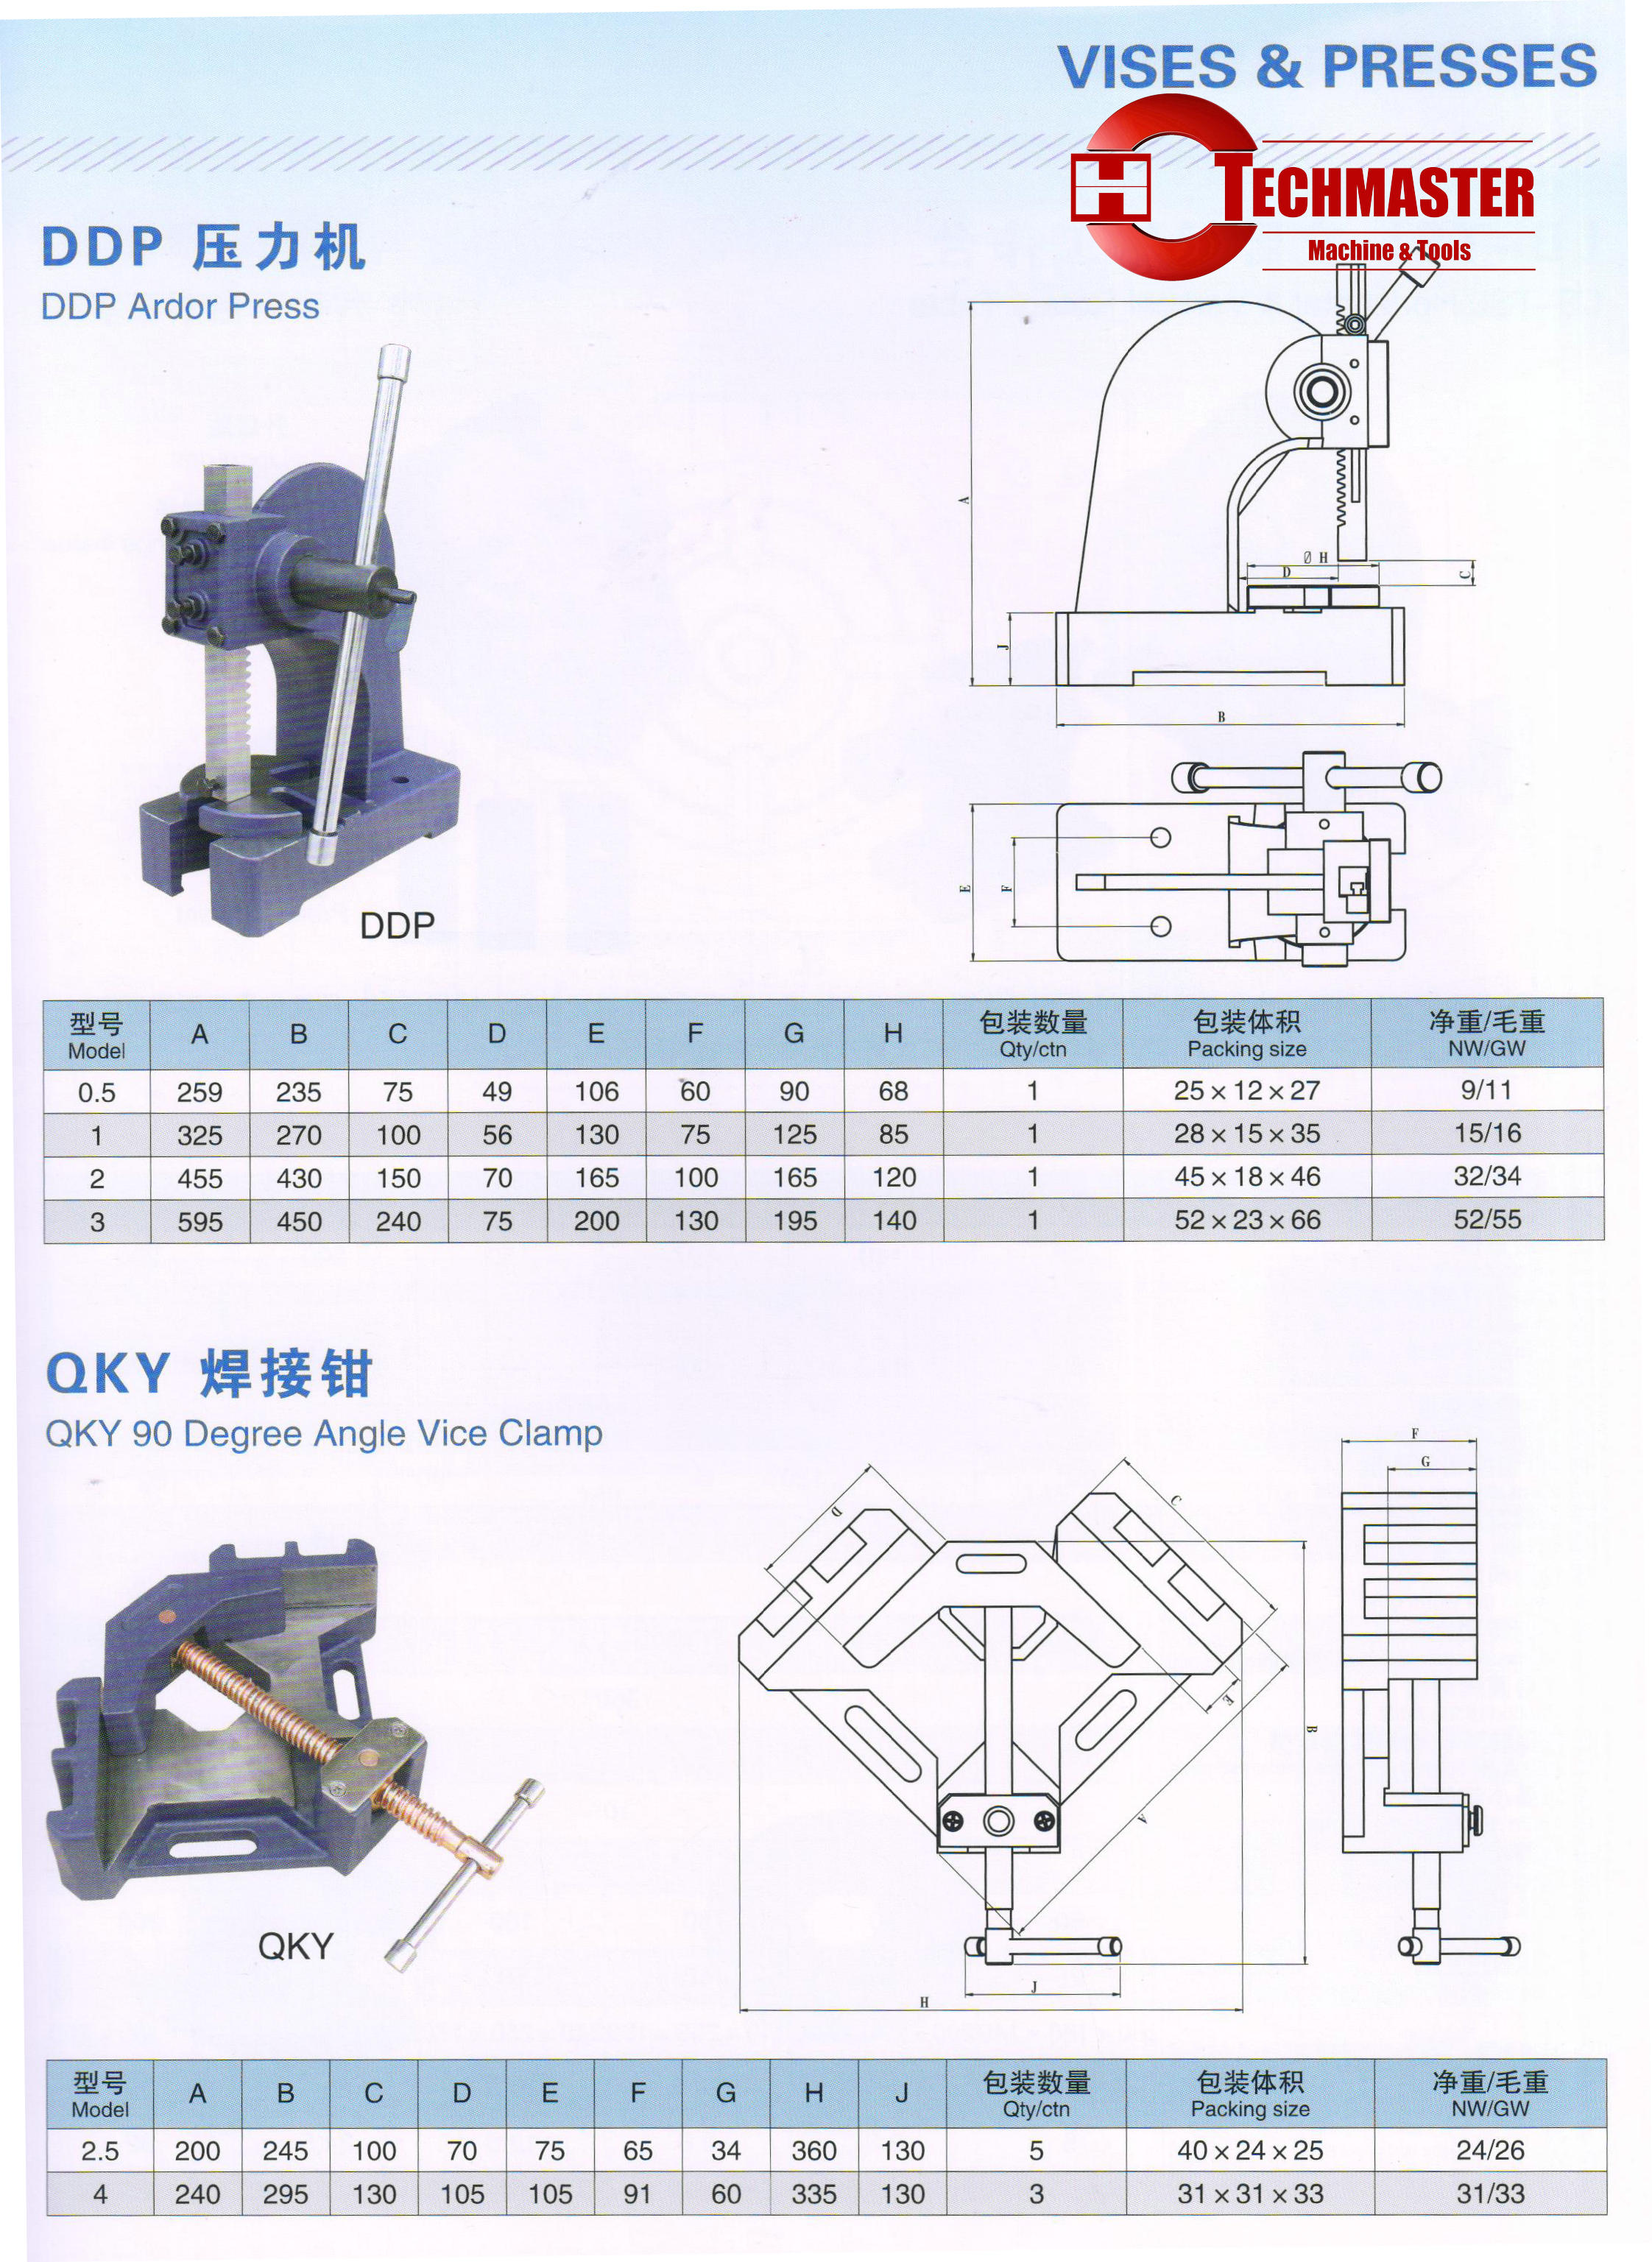 DDP ARBOR PRESS -QKY 90 DEGREE ANGLE VICE CLAMP